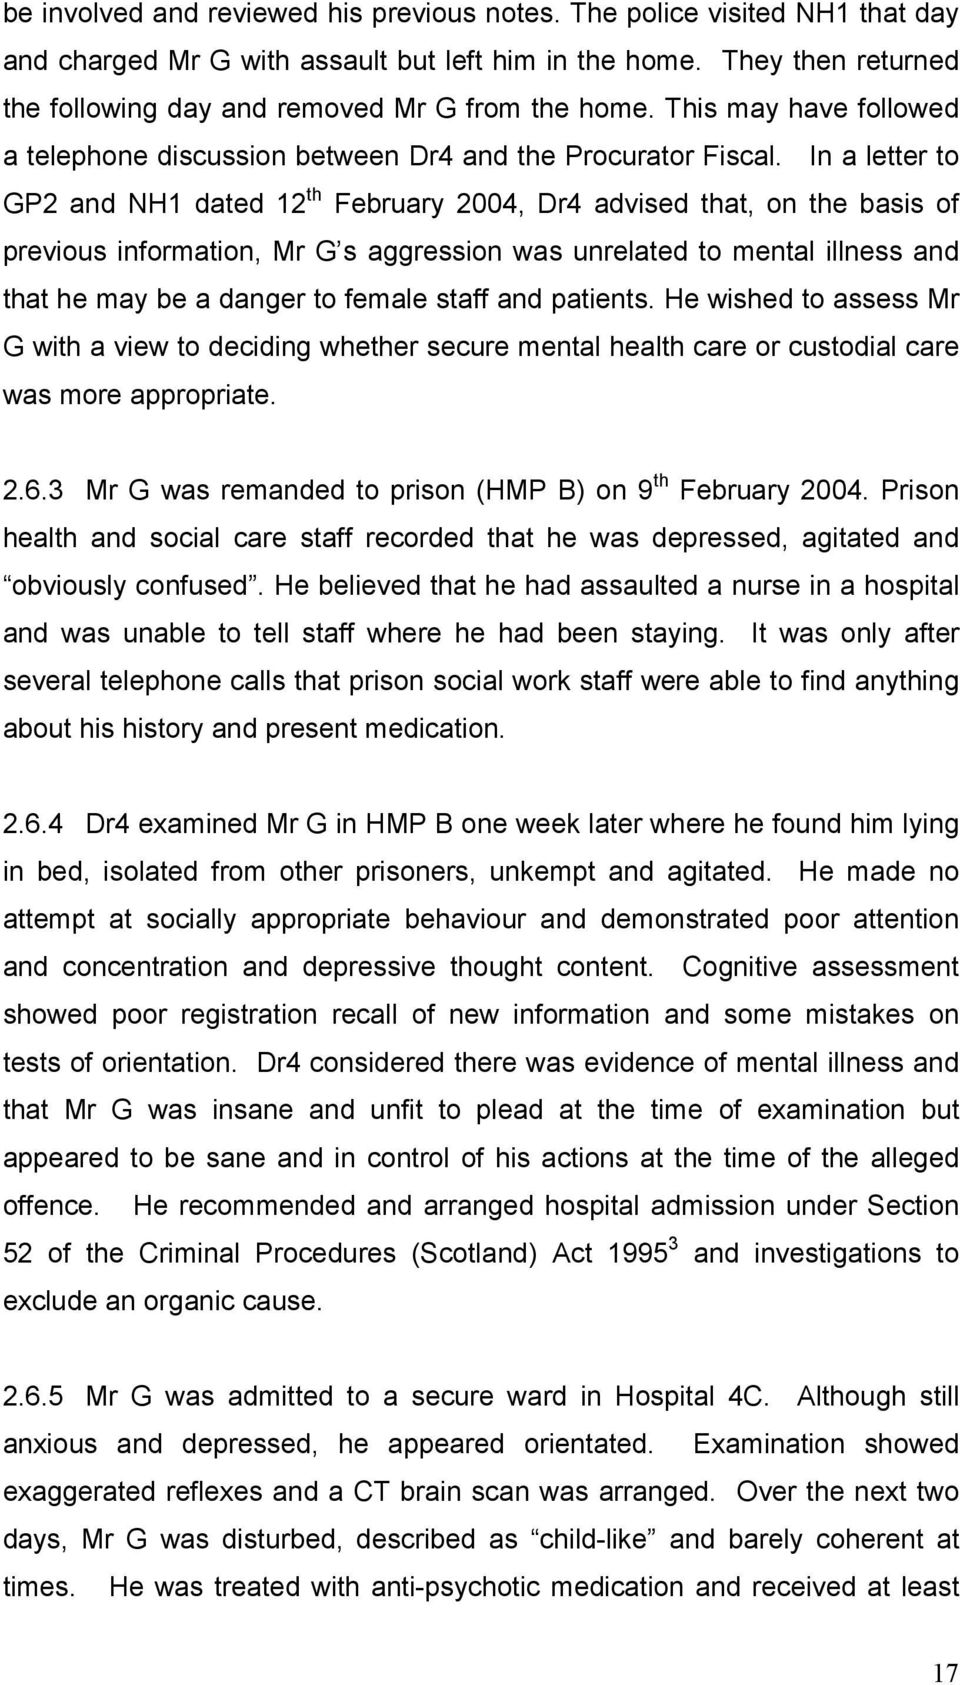 In a letter to GP2 and NH1 dated 12 th February 2004, Dr4 advised that, on the basis of previous information, Mr G s aggression was unrelated to mental illness and that he may be a danger to female